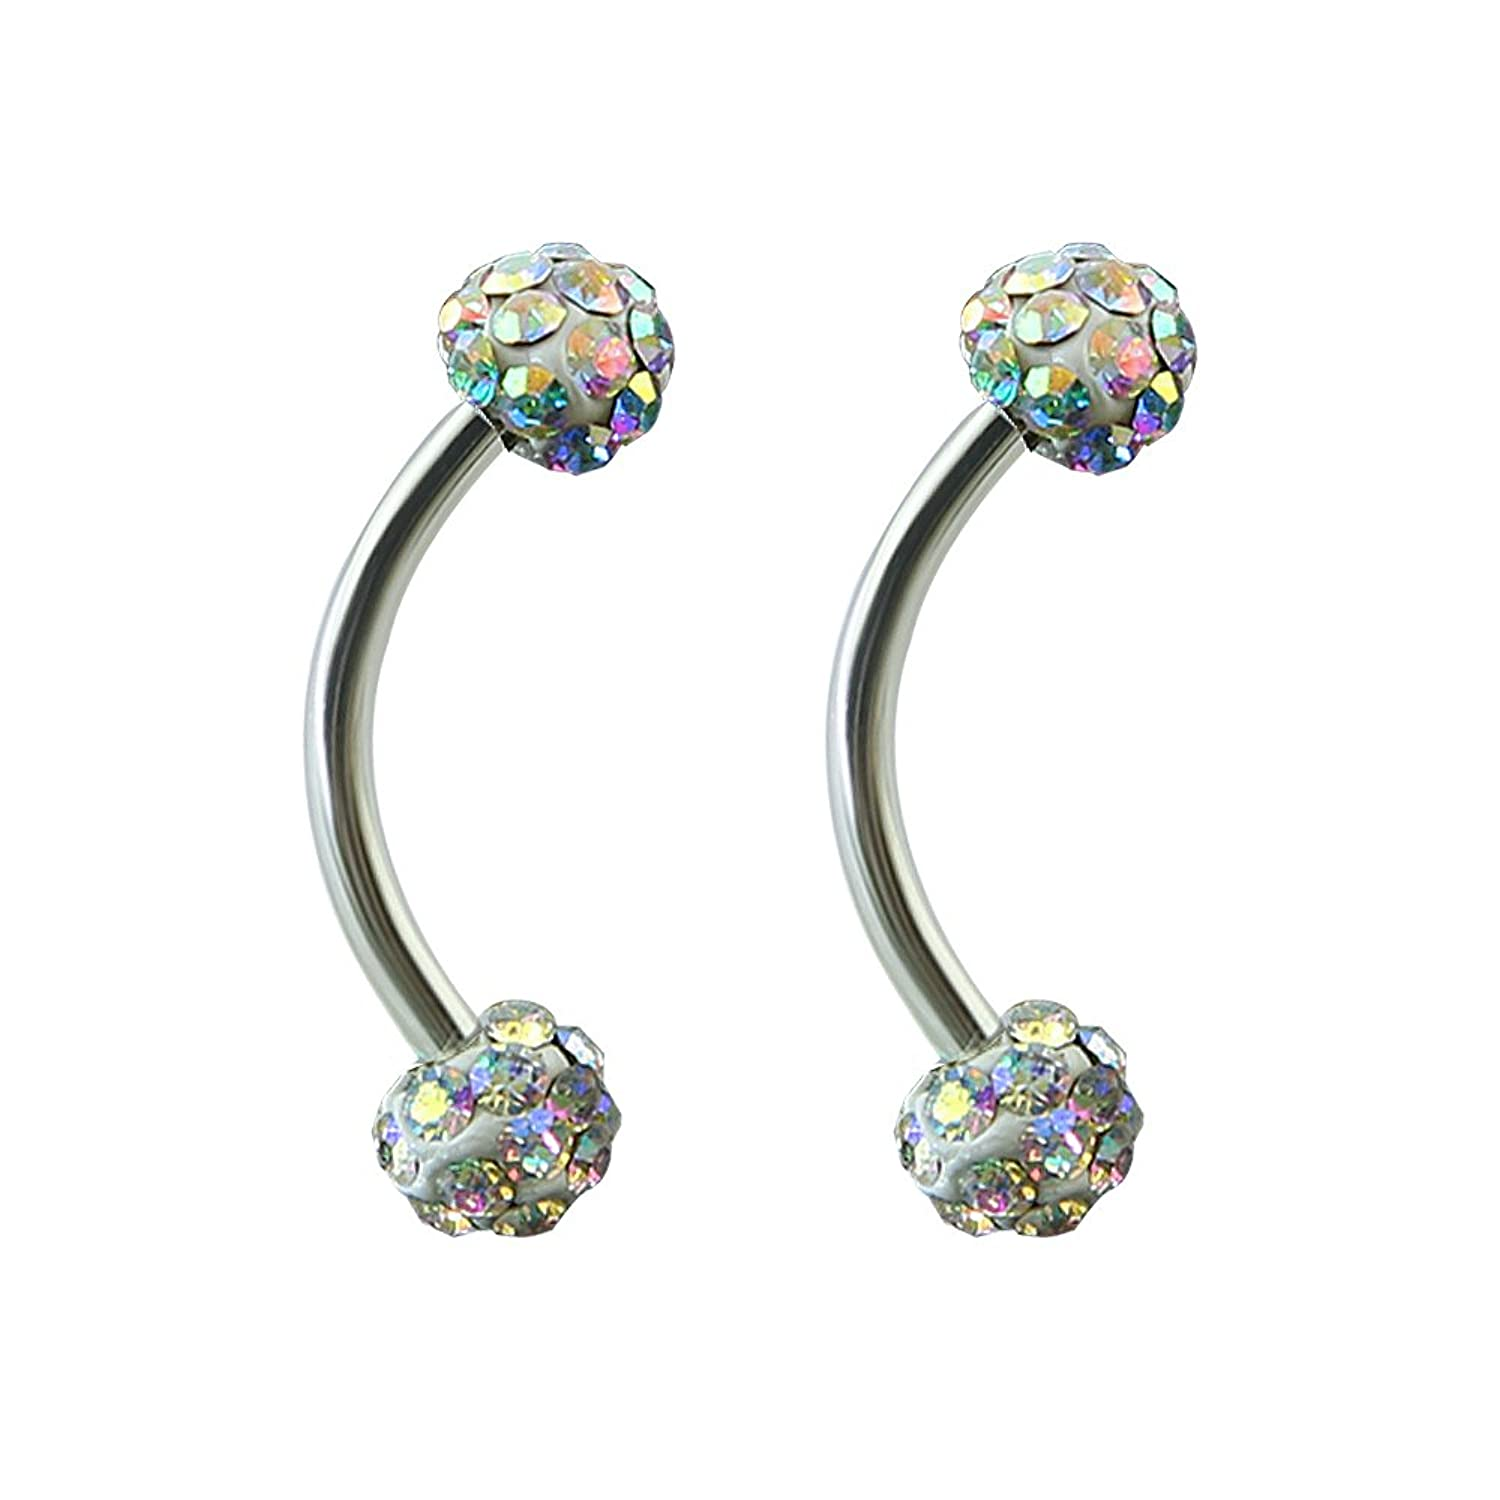 Amazon 16g Tiny 4mm Crystal Ball Curved Barbell Eyebrow Ring